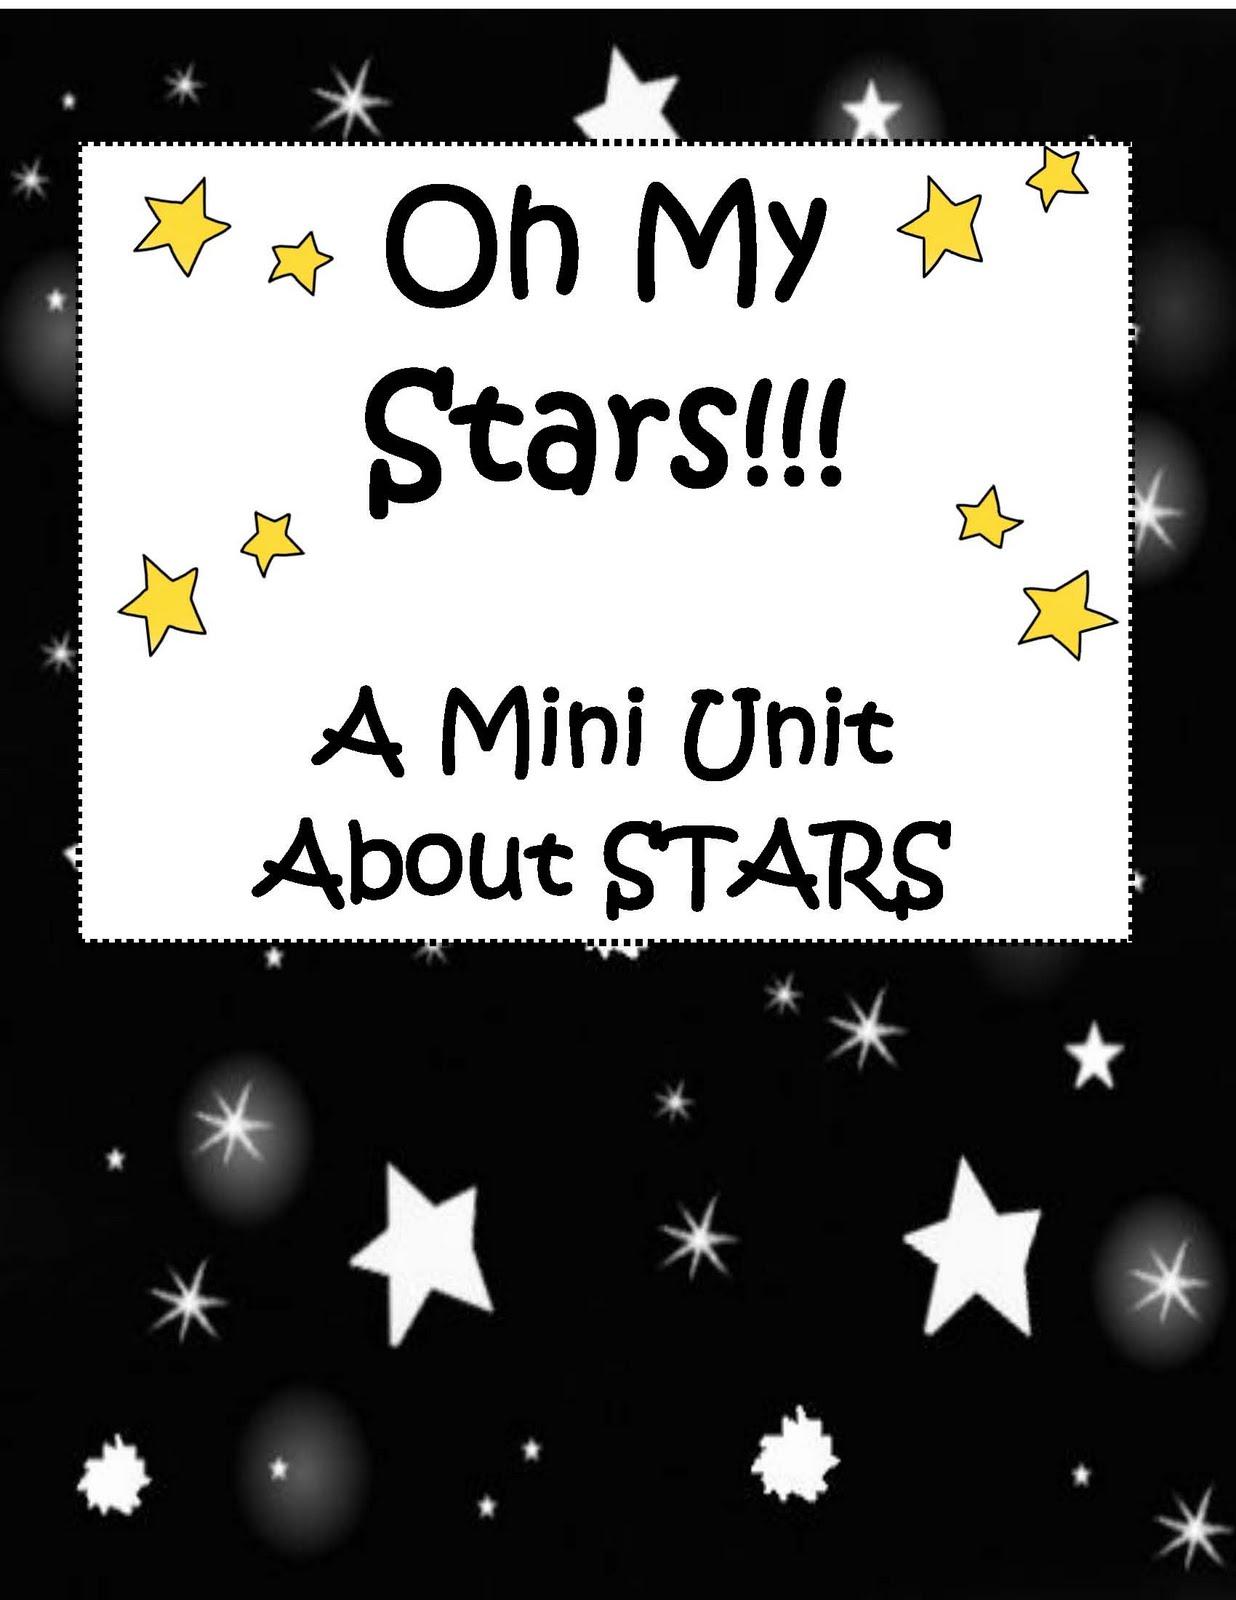 Made 4 Elementary And Made 4 Middle School Star Activity